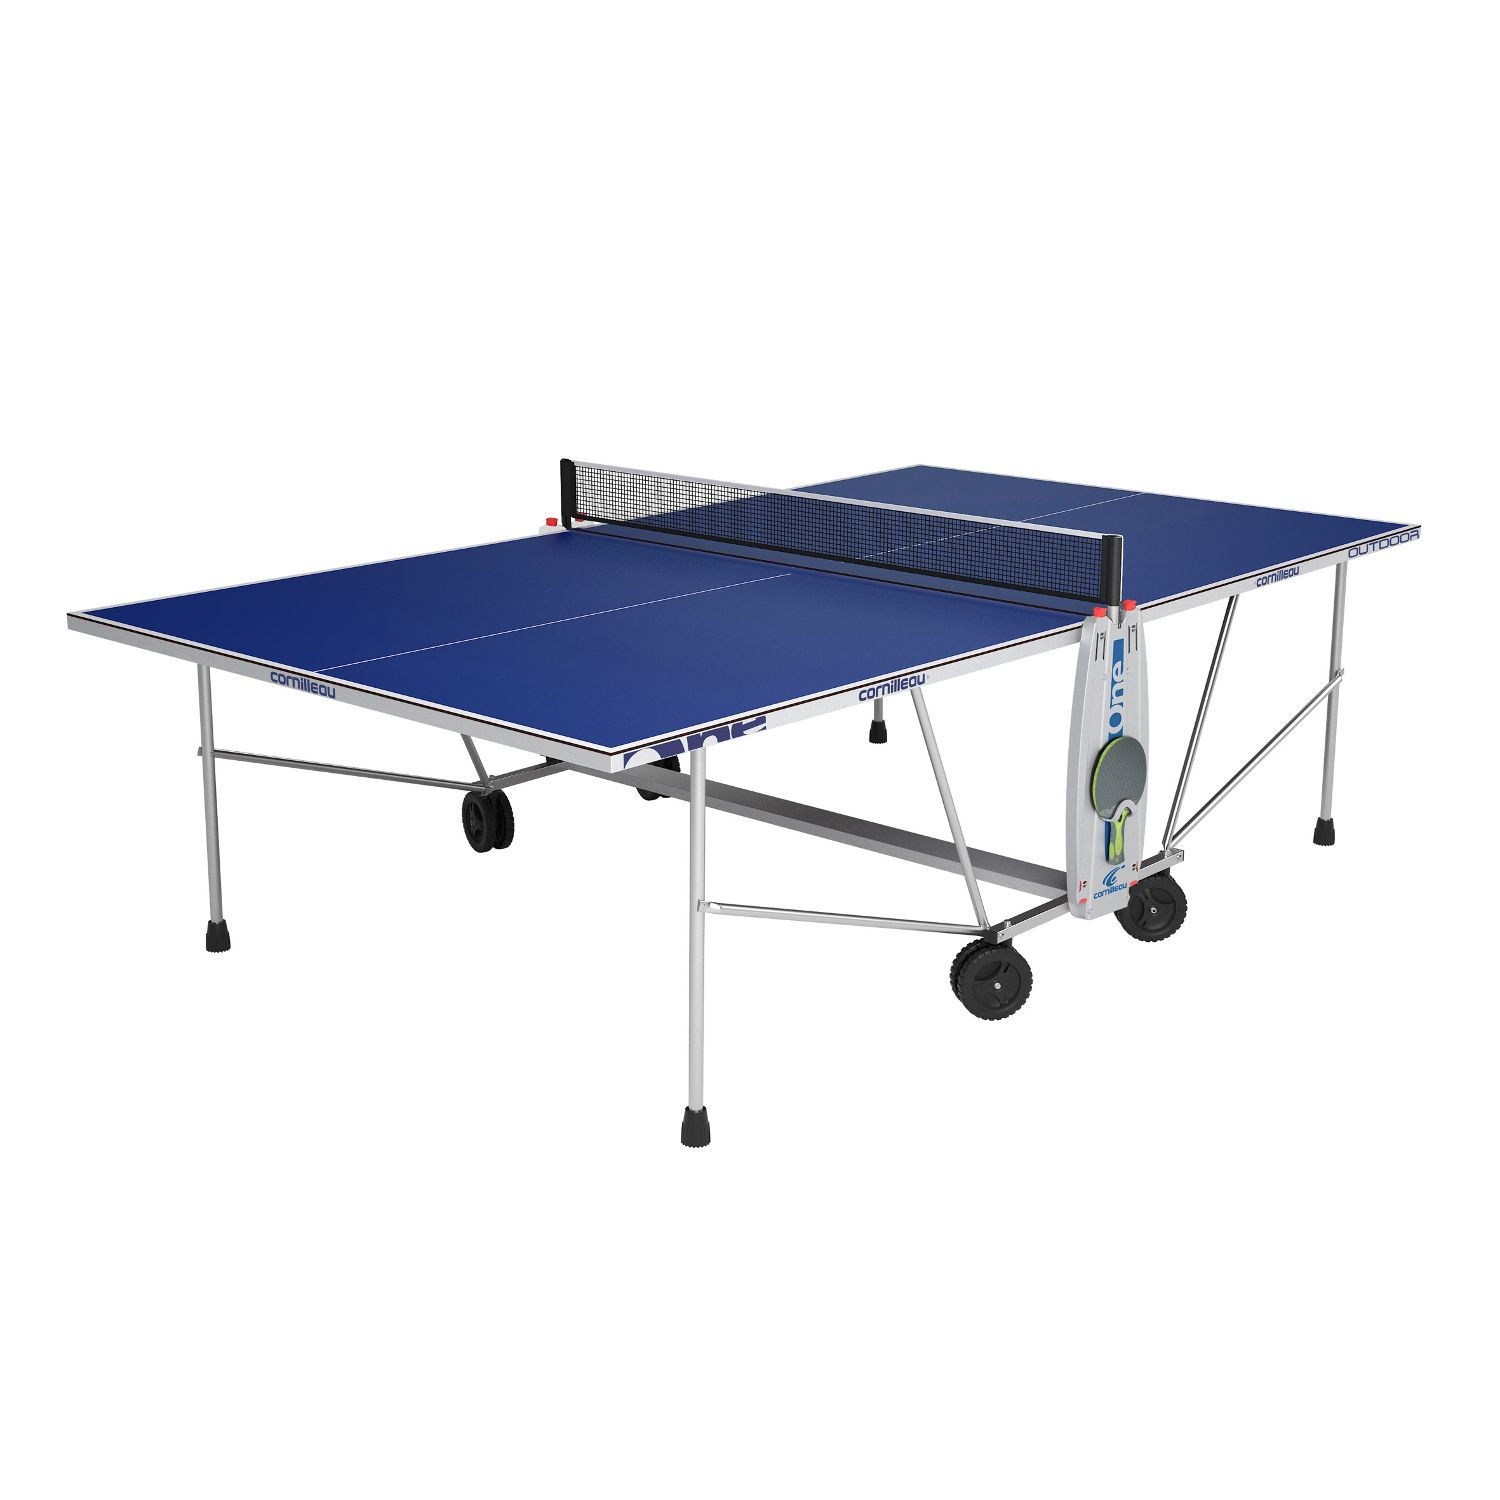 cornilleau outdoor sport one rollaway table tennis table. Black Bedroom Furniture Sets. Home Design Ideas